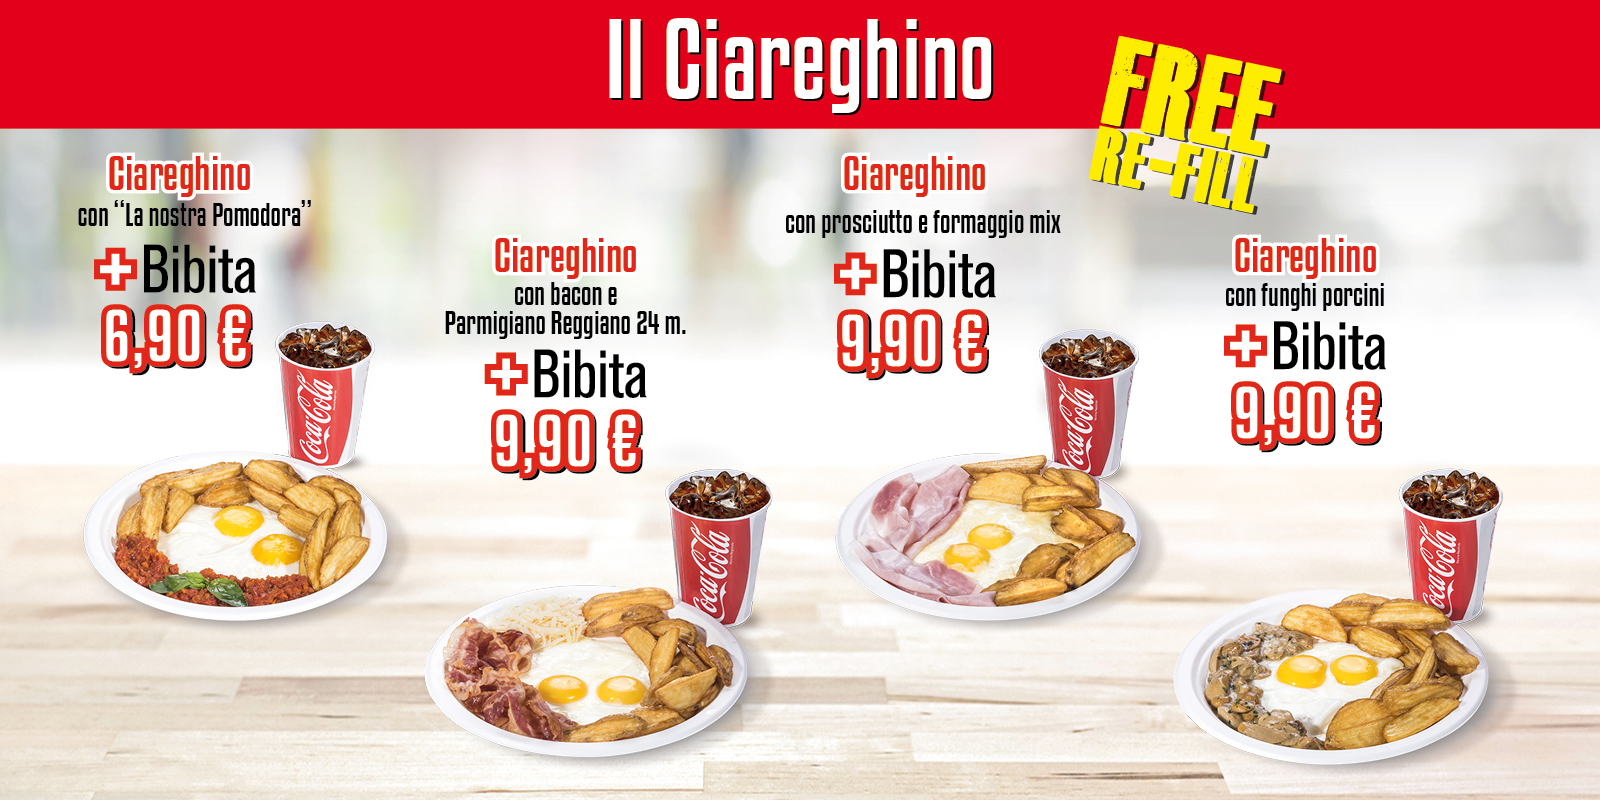 Ciareghino fast food Bergamo